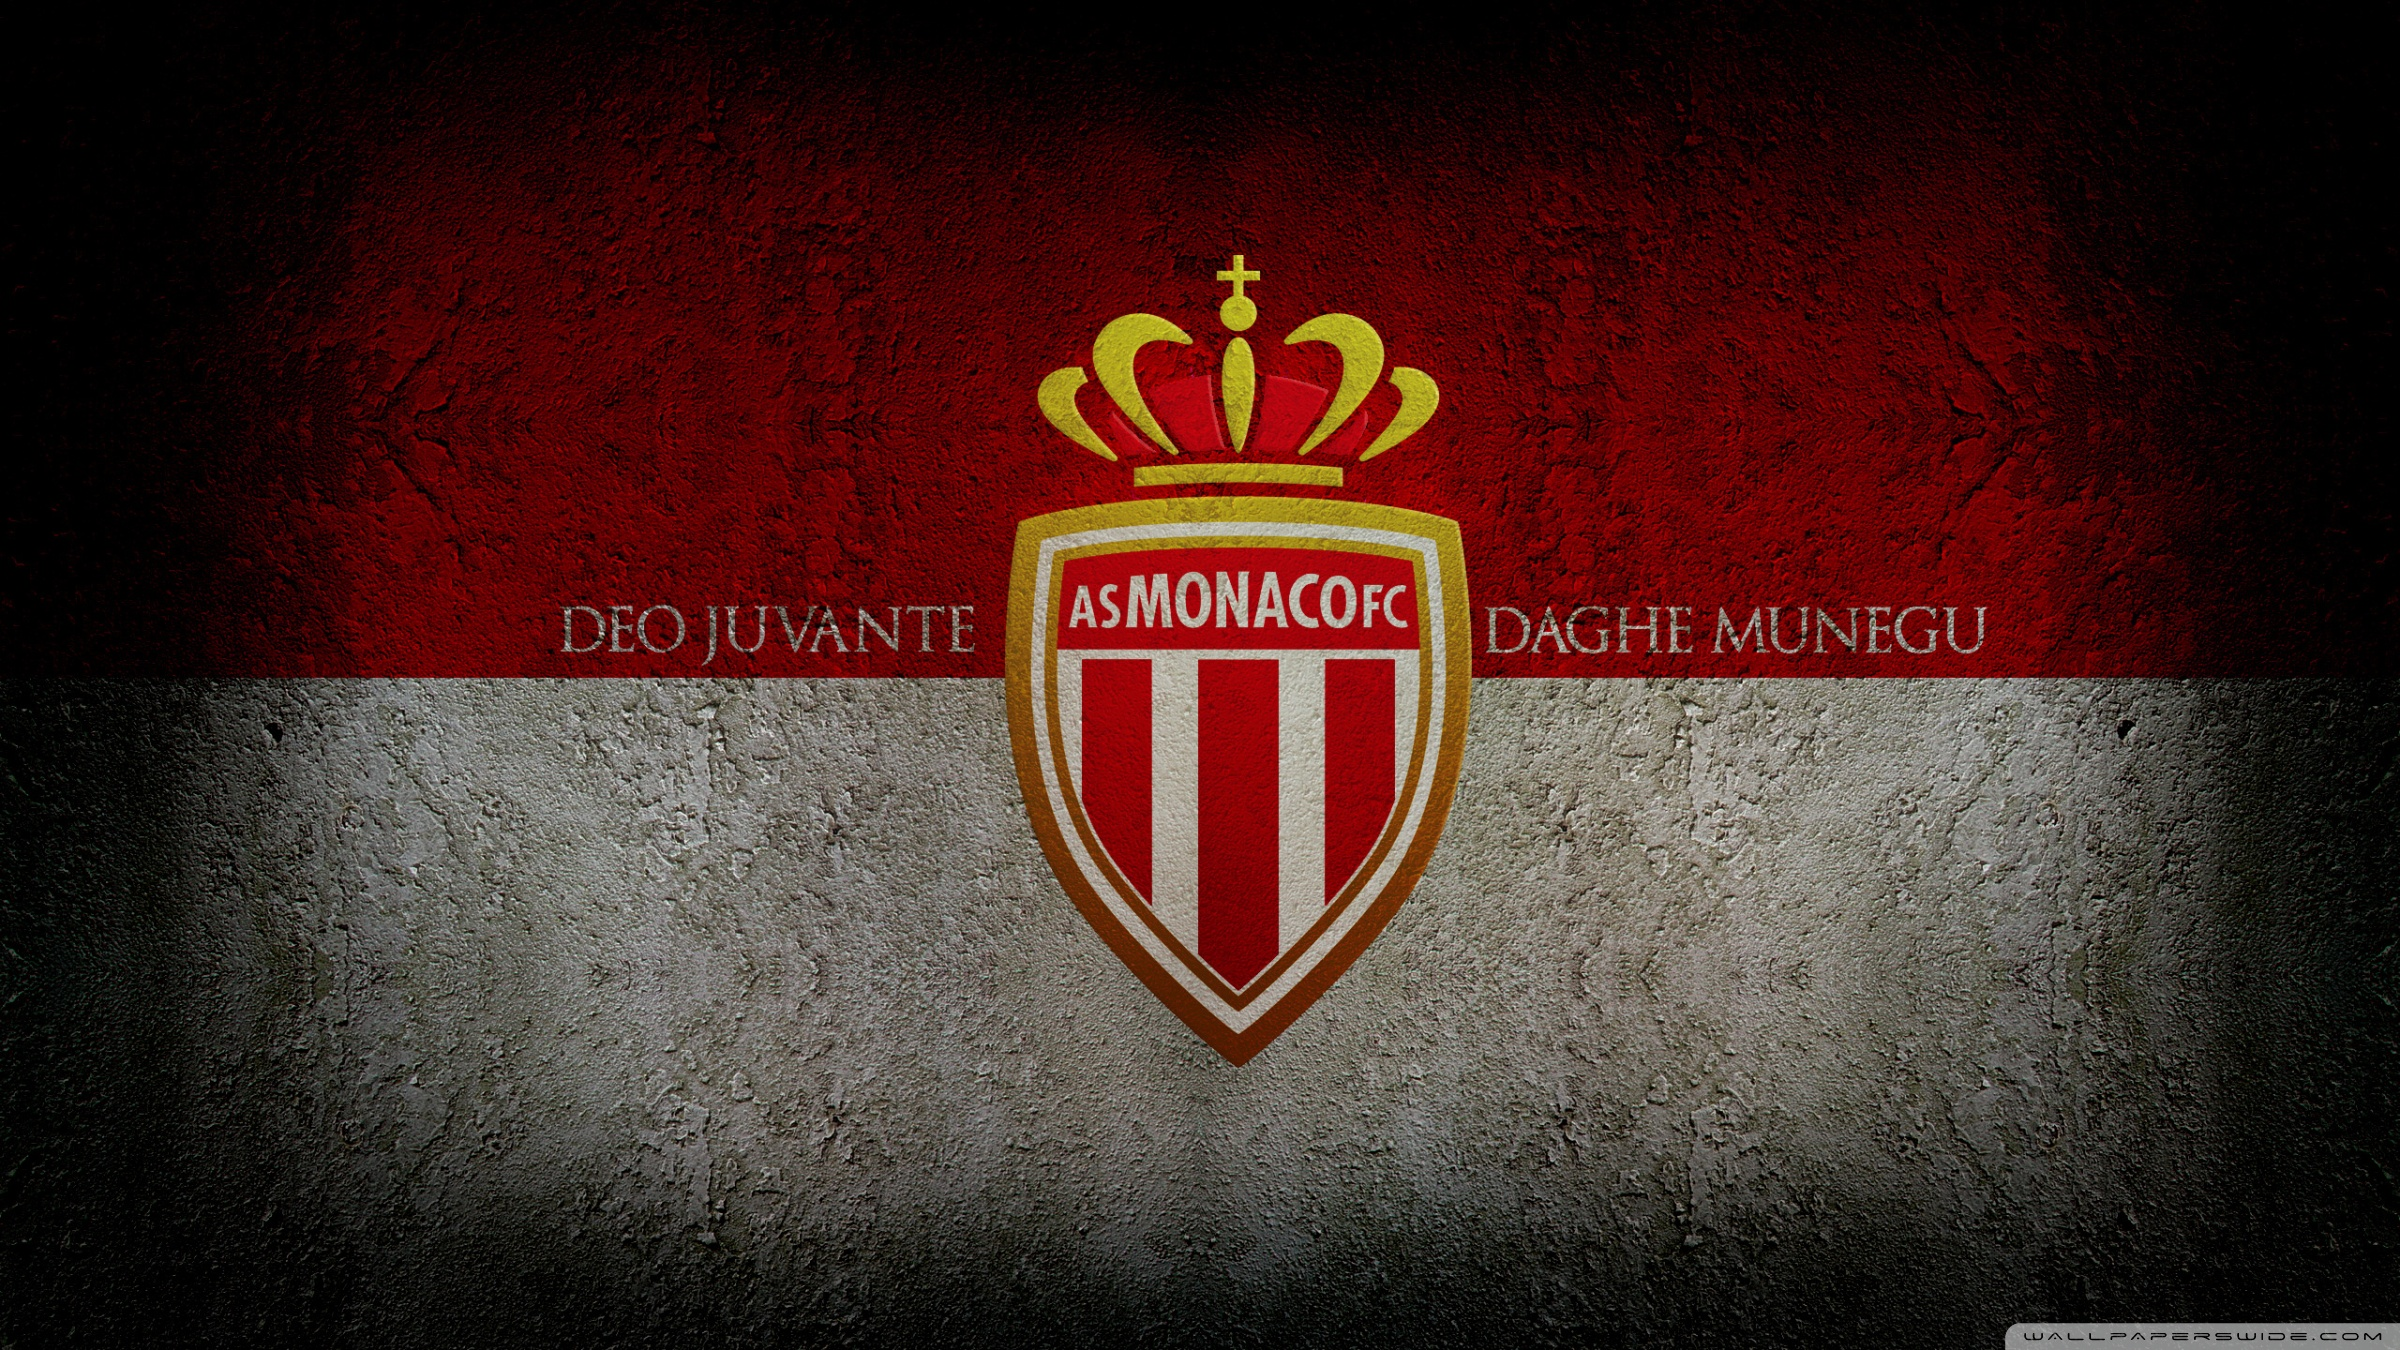 AS Monaco FC 4K HD Desktop Wallpaper for 4K Ultra HD TV Dual 2400x1350